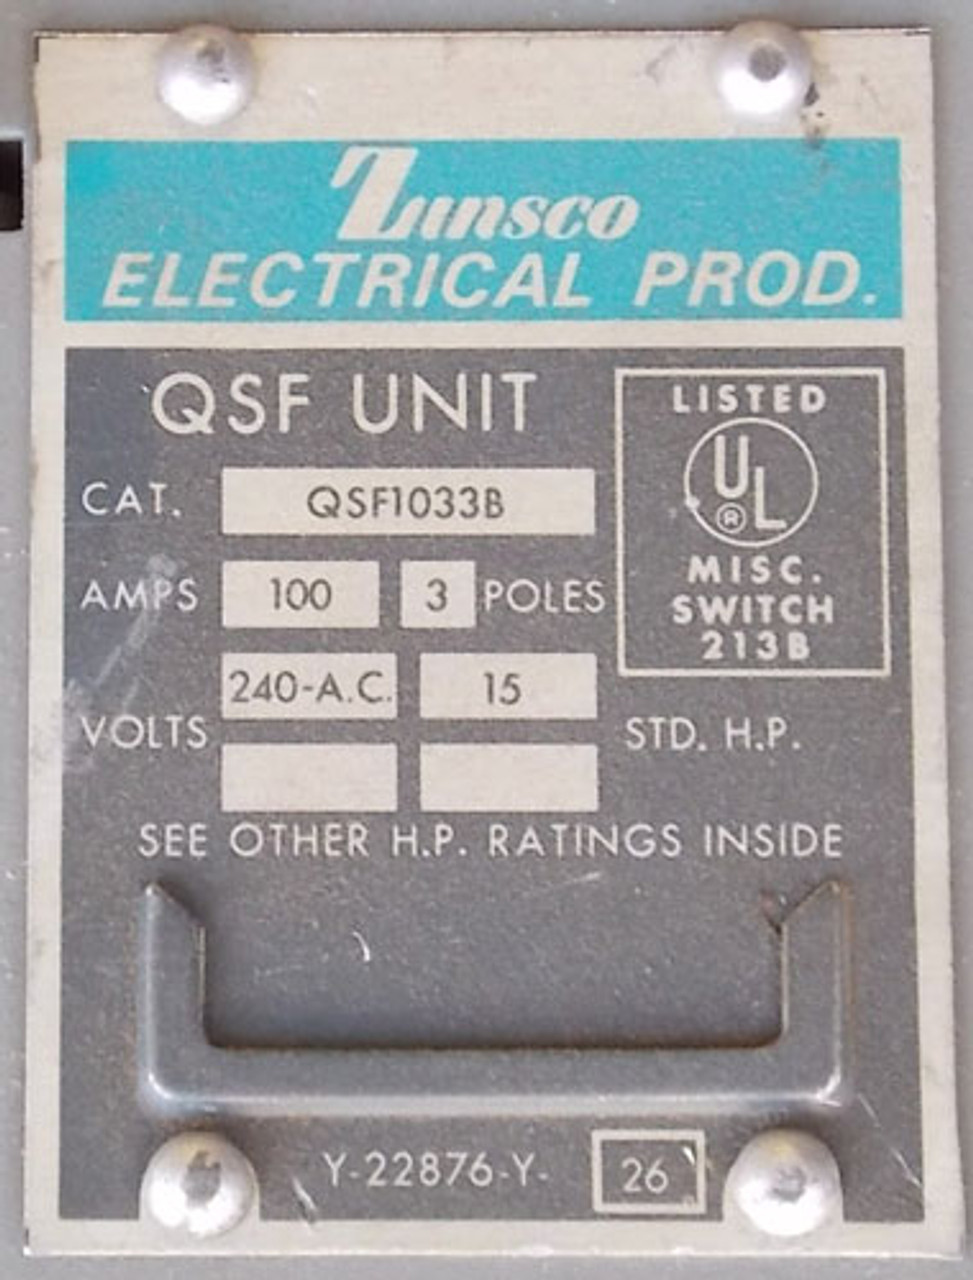 Zinsco QSF1033B 100 Amp 240VAC 3PH Panelboard Switch - Reconditioned